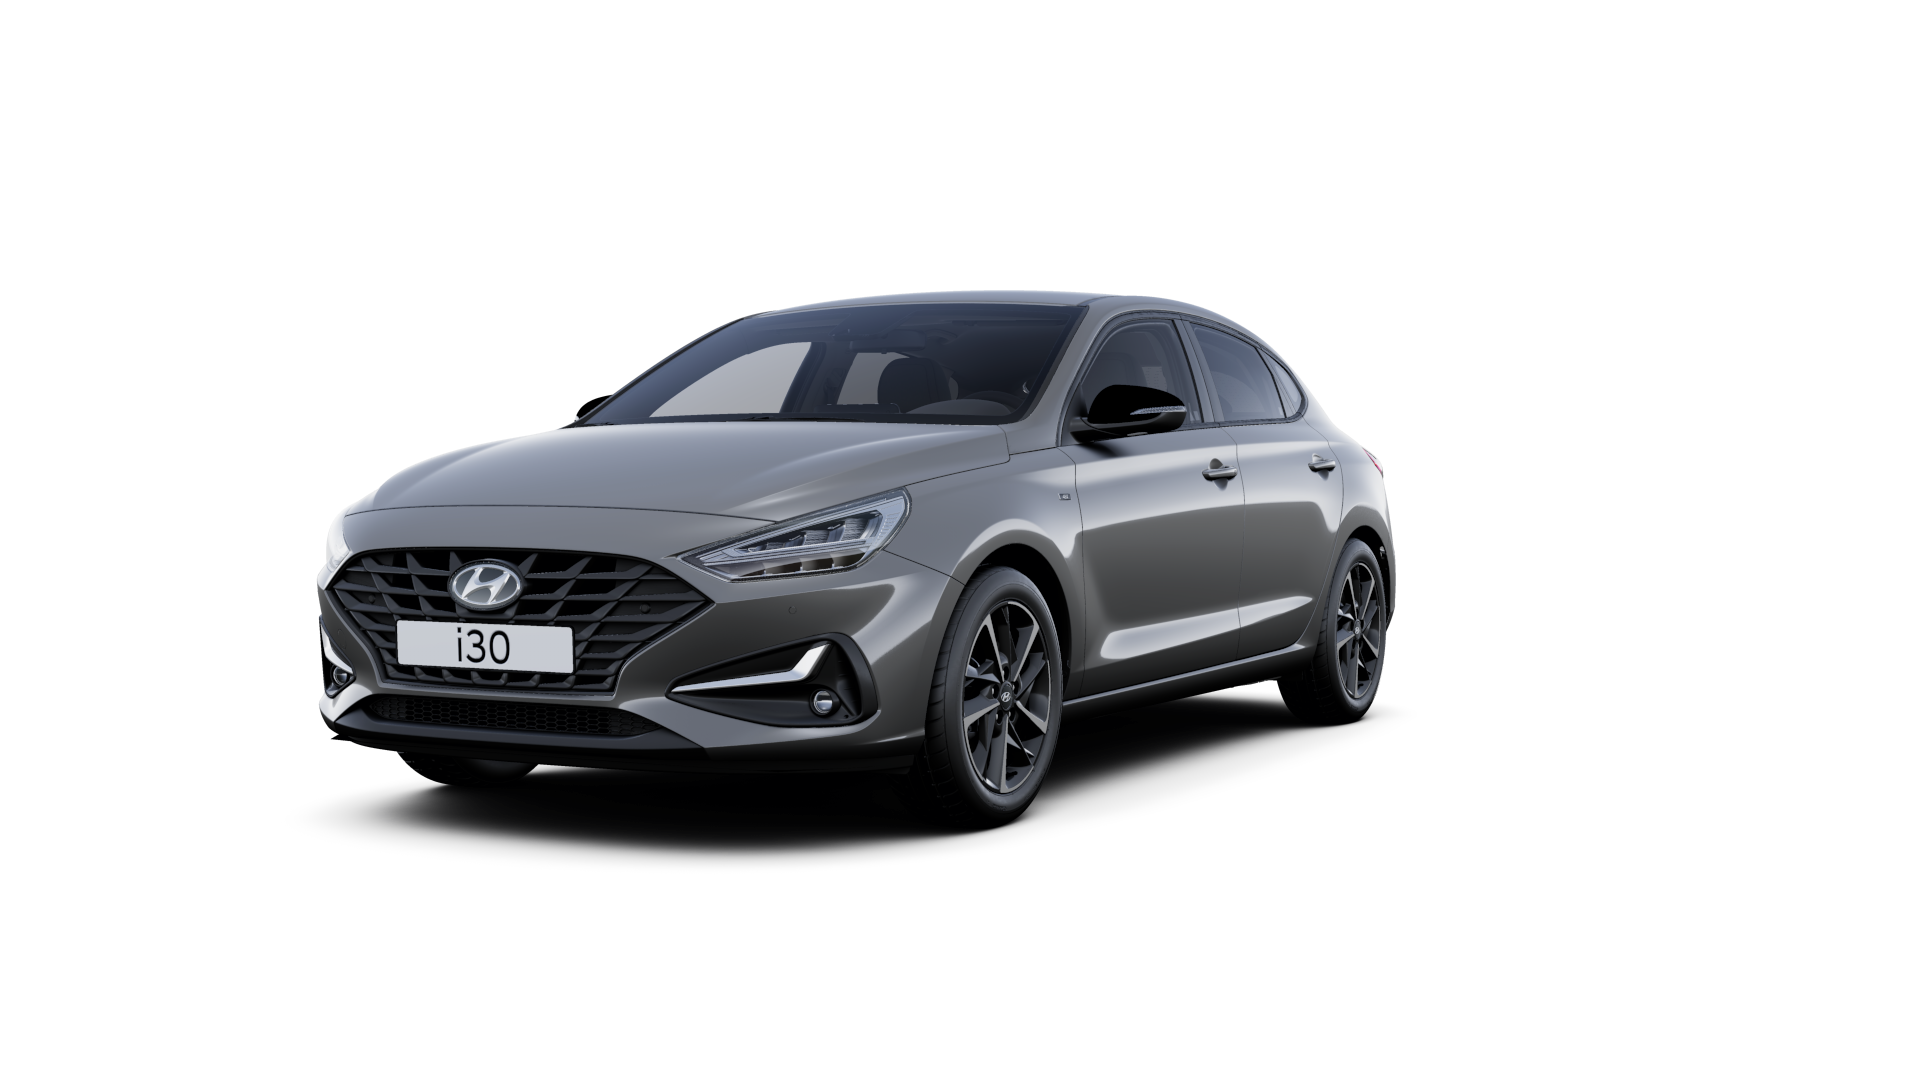 Front side view of the new Hyundai i30 Fastback in the colour Amazon Grey.